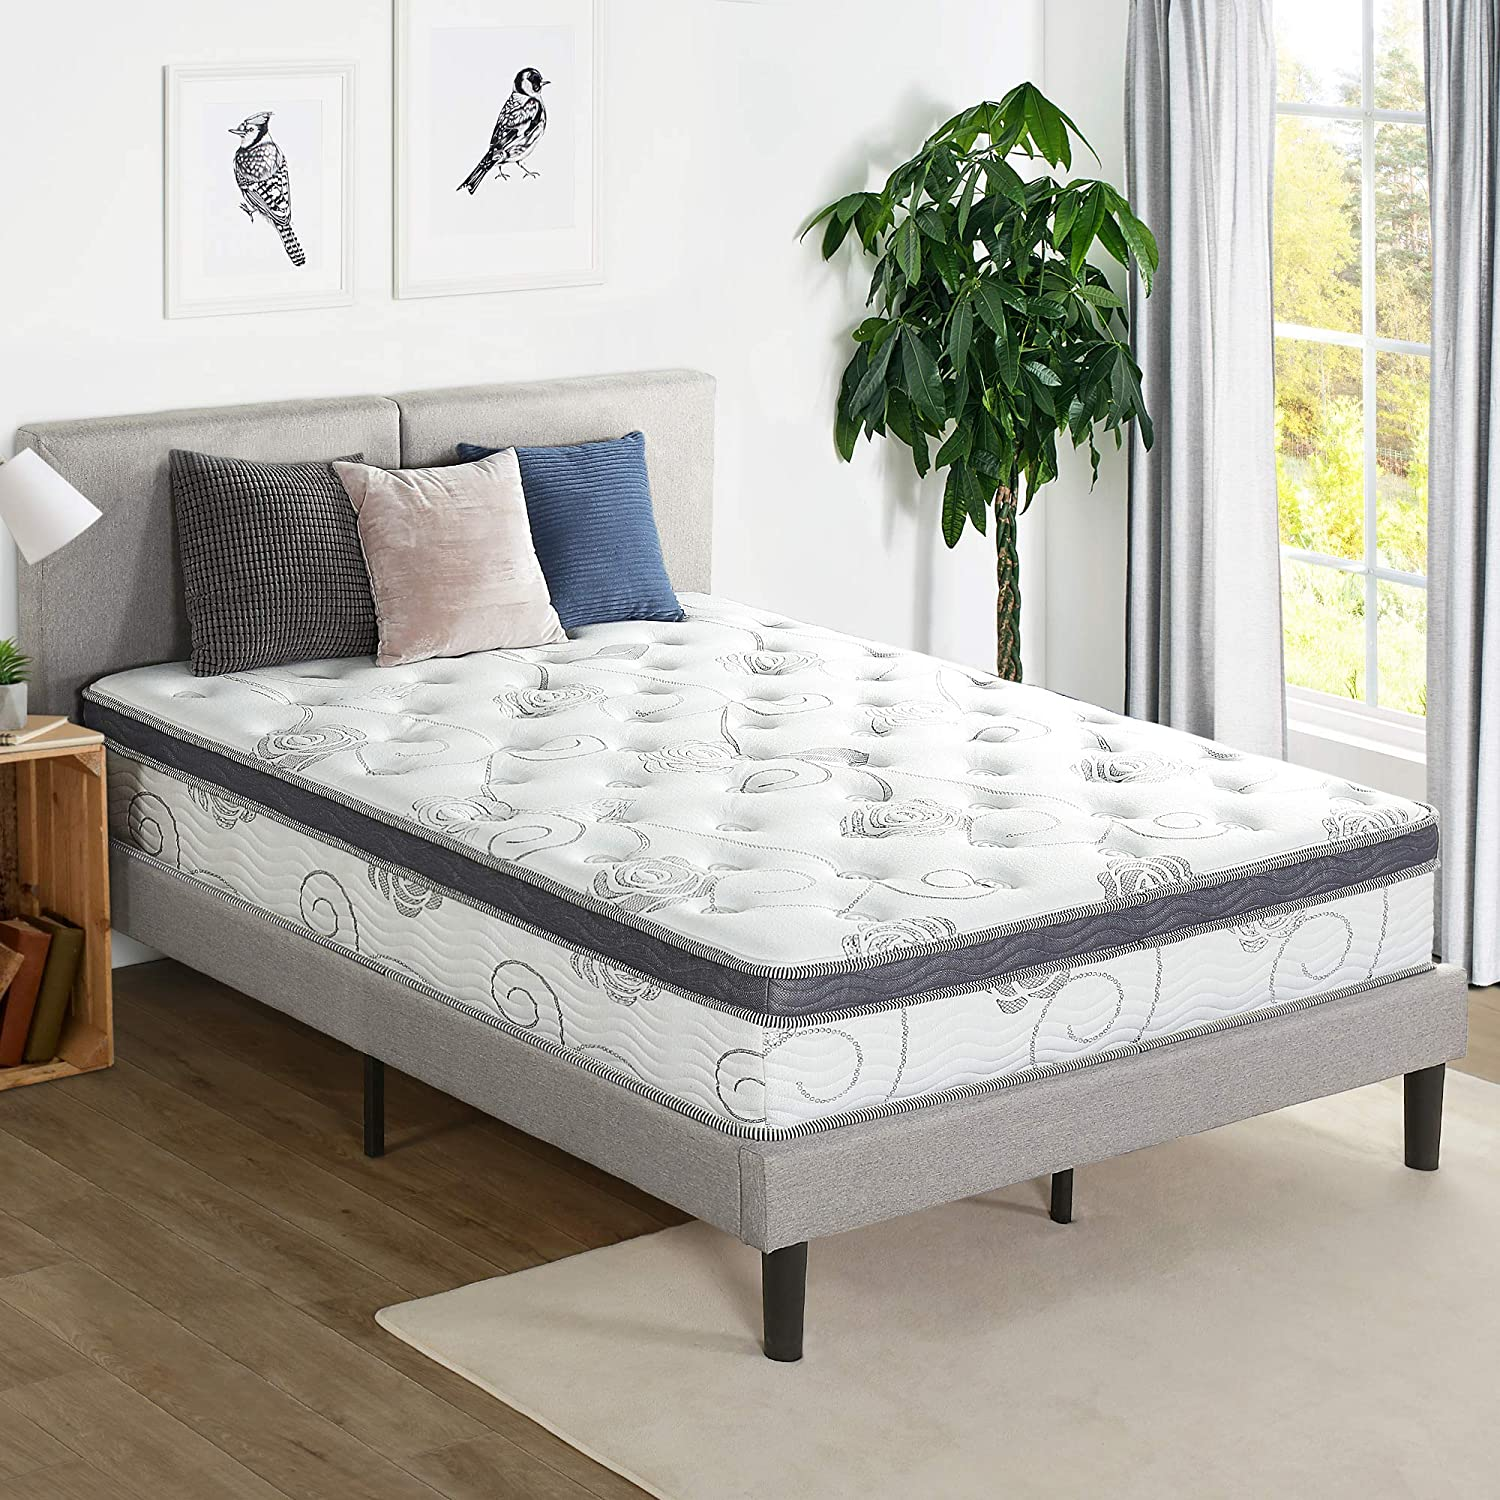 Olee Sleep Bed Mattress Conventional